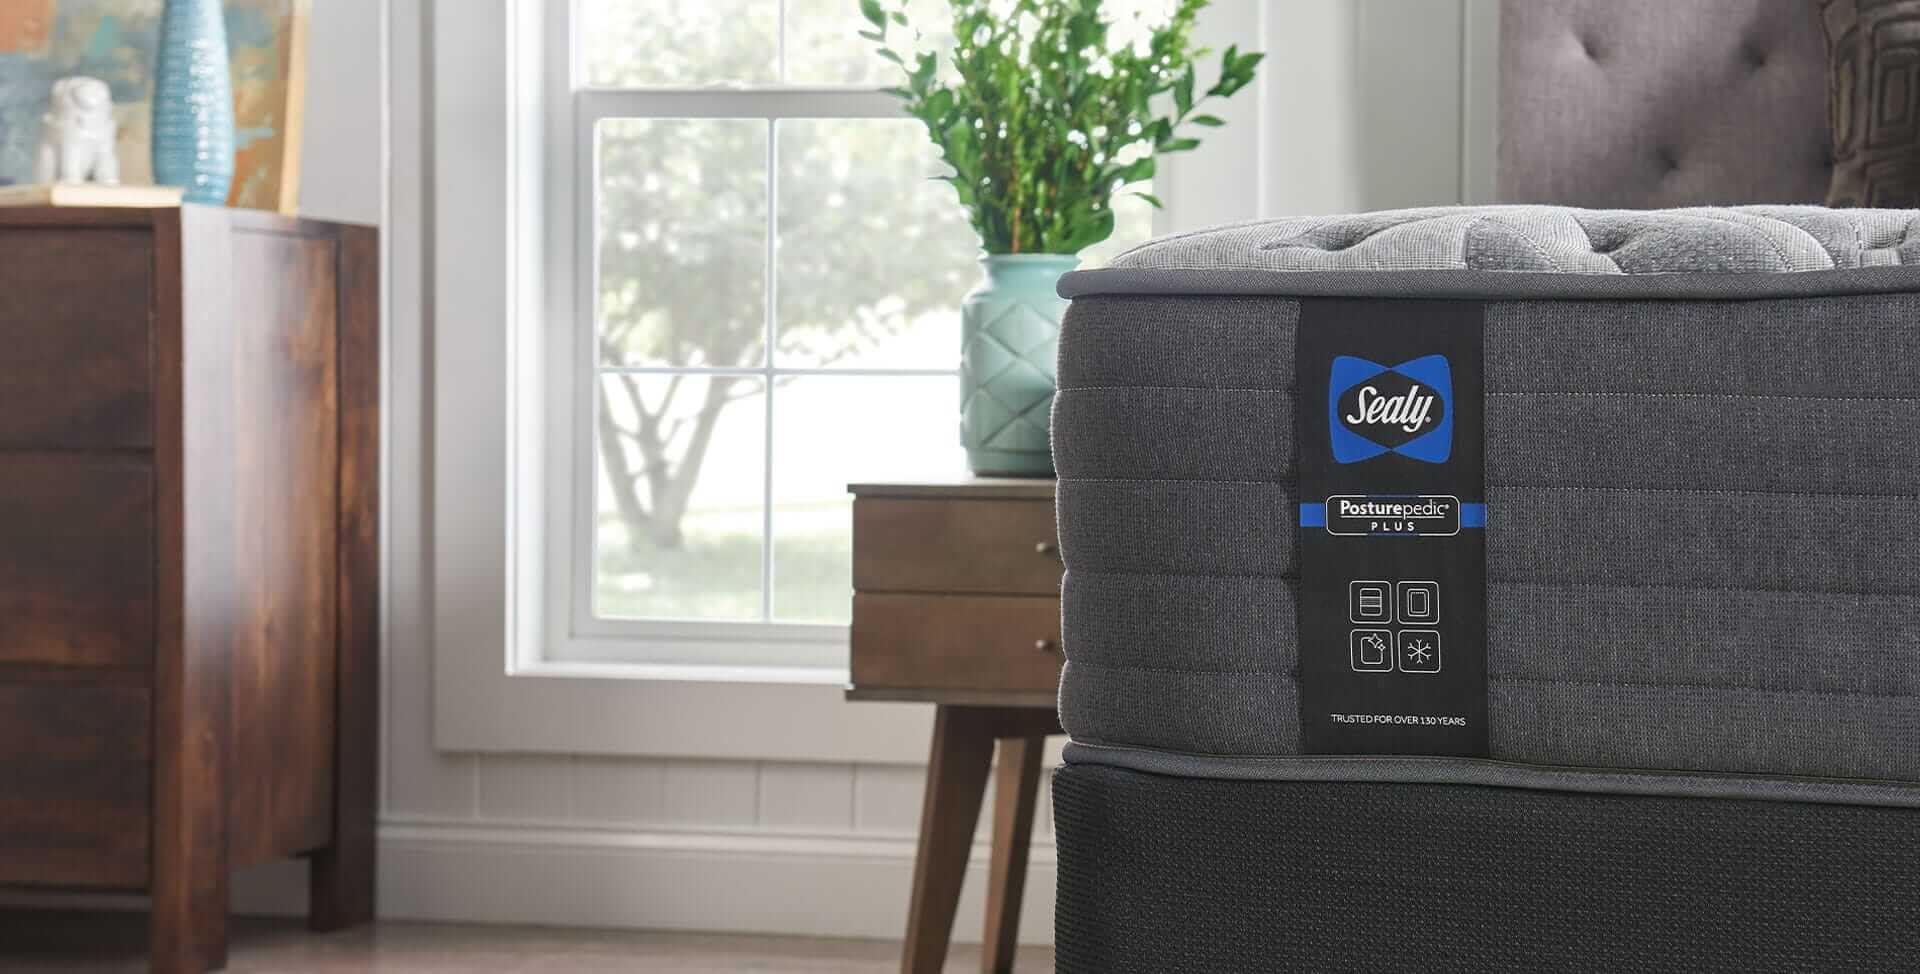 Sealy Posturepedic® Plus mattress photo